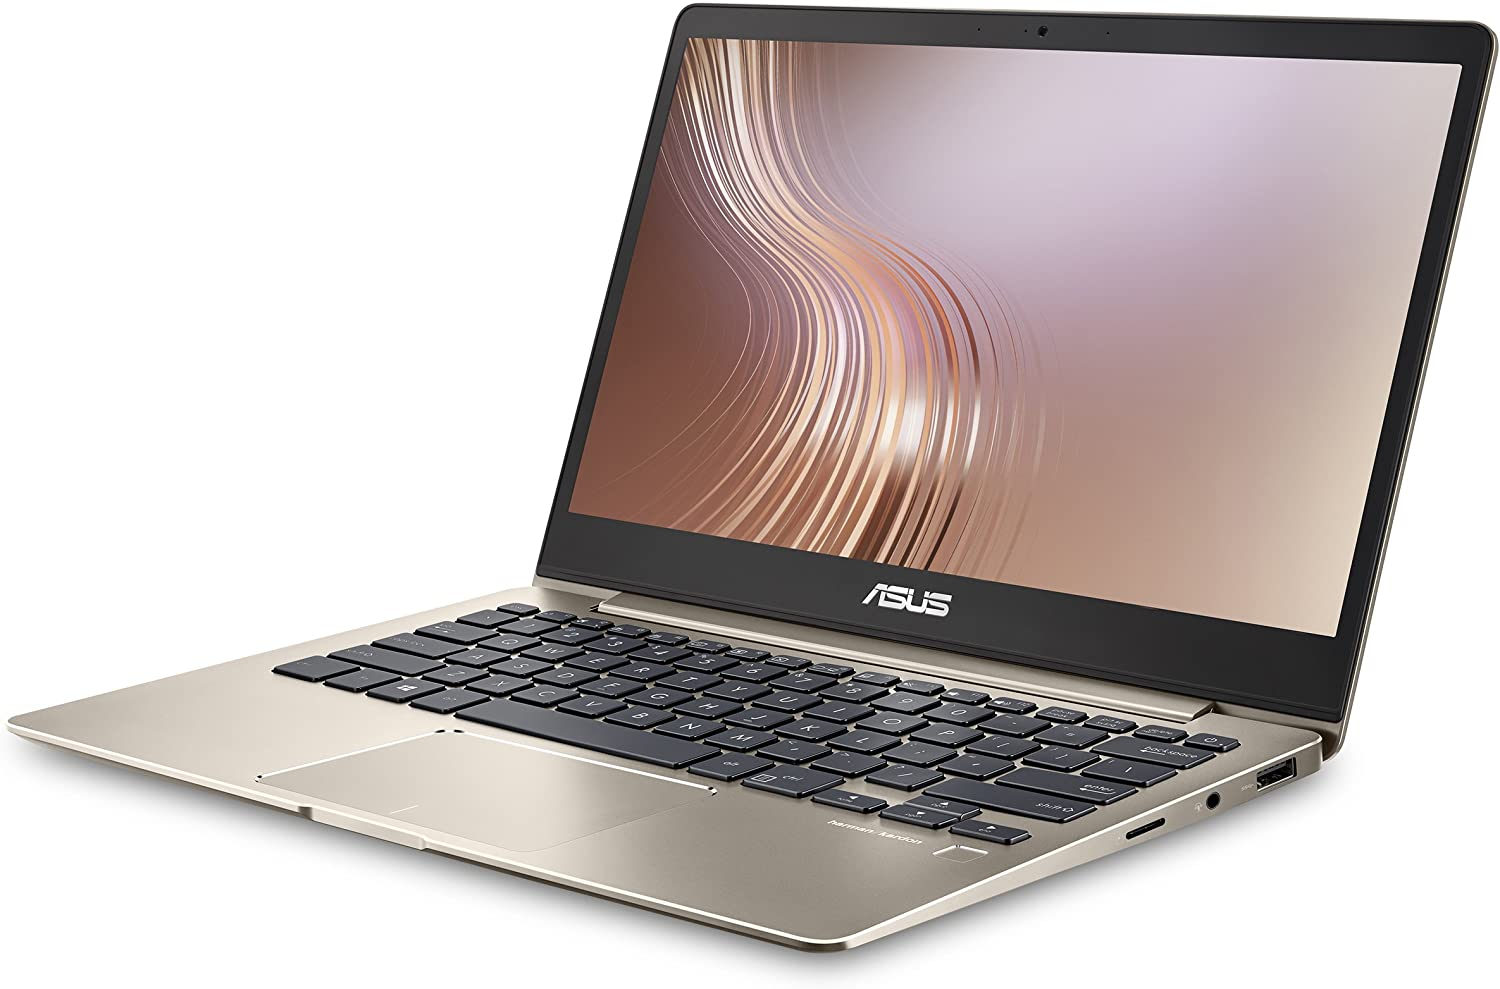 "ASUS ZenBook 13 UX331UA Ultra-Slim Laptop 13.3"" Full HD WideView display, 8th gen Intel Core i7-8550U Processor, 8GB LPDDR3, 256GB SSD, Windows 10, Backlit keyboard, Fingerprint, Icicle Gold"